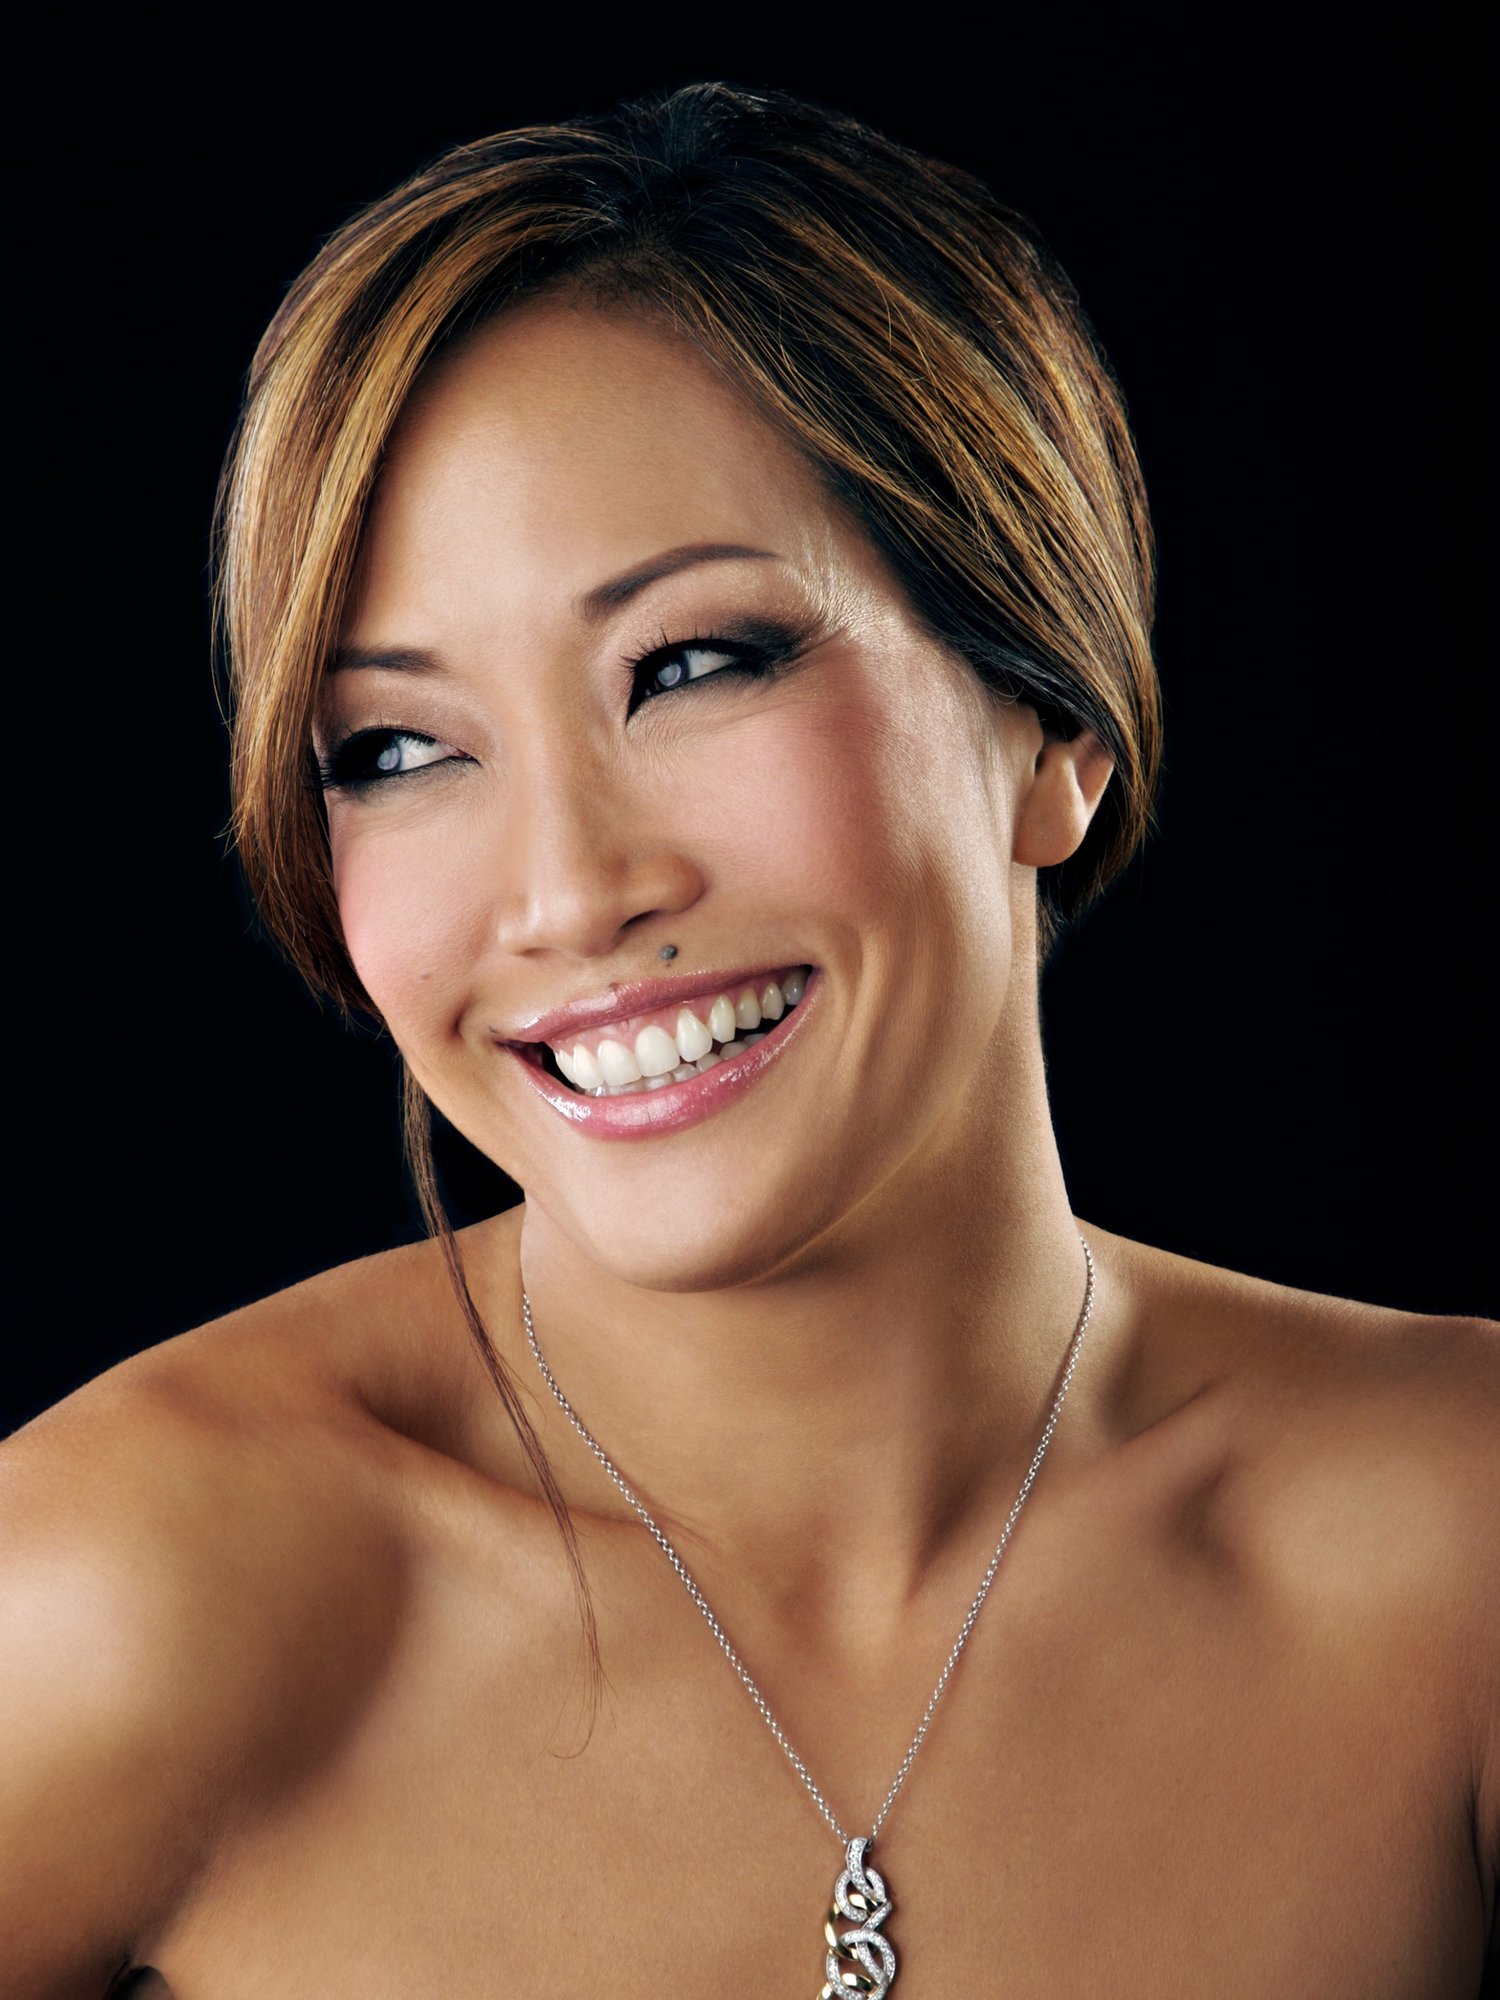 Nackt  Carrie Inaba Ann Carrie Anne